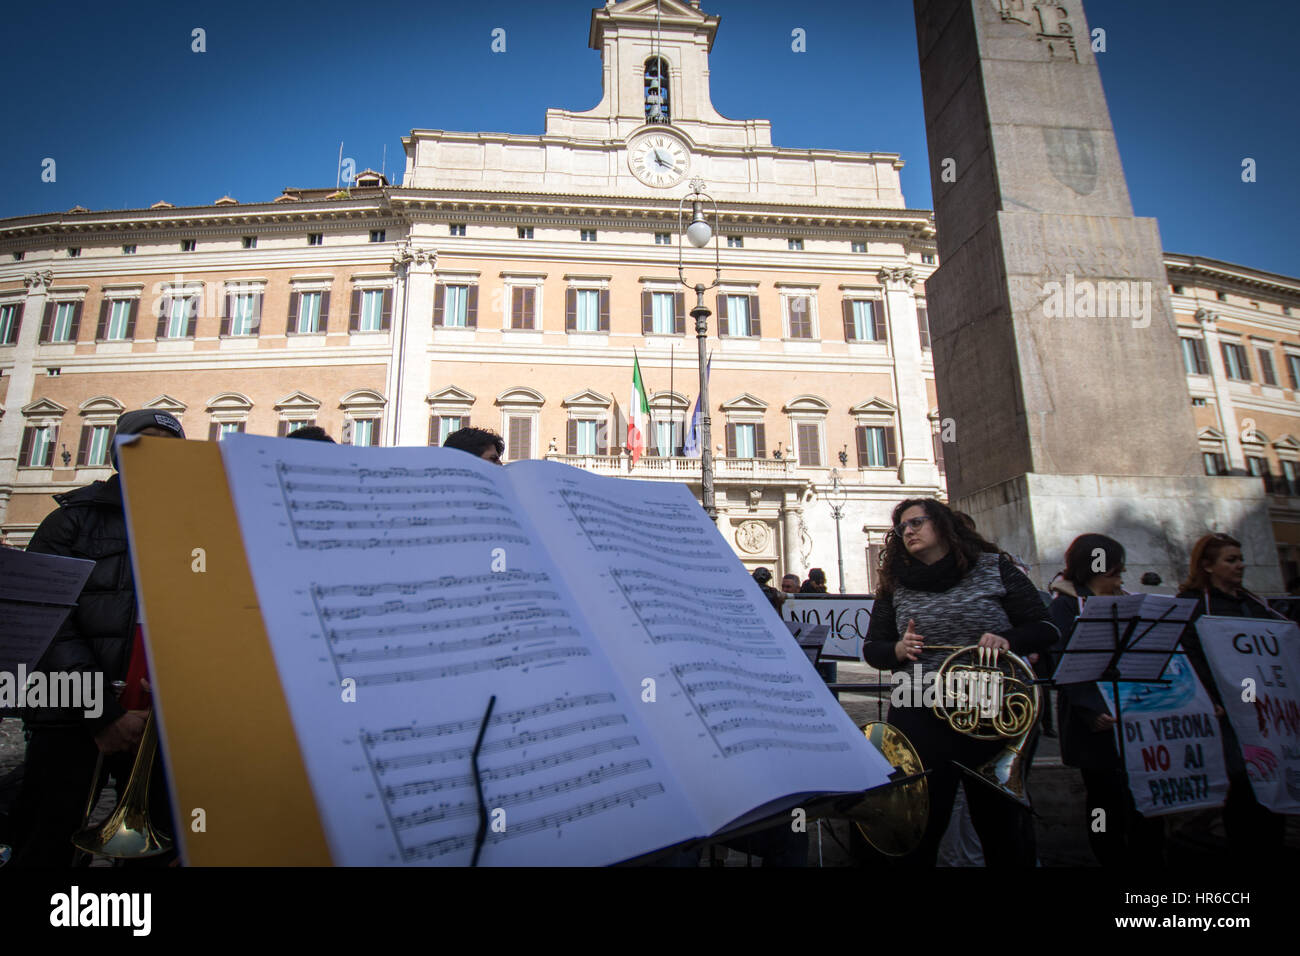 Rome, Italy. 27th Feb, 2017. Protest in music at Montecitorio. Taking to the streets with trombones, saxophones Stock Photo